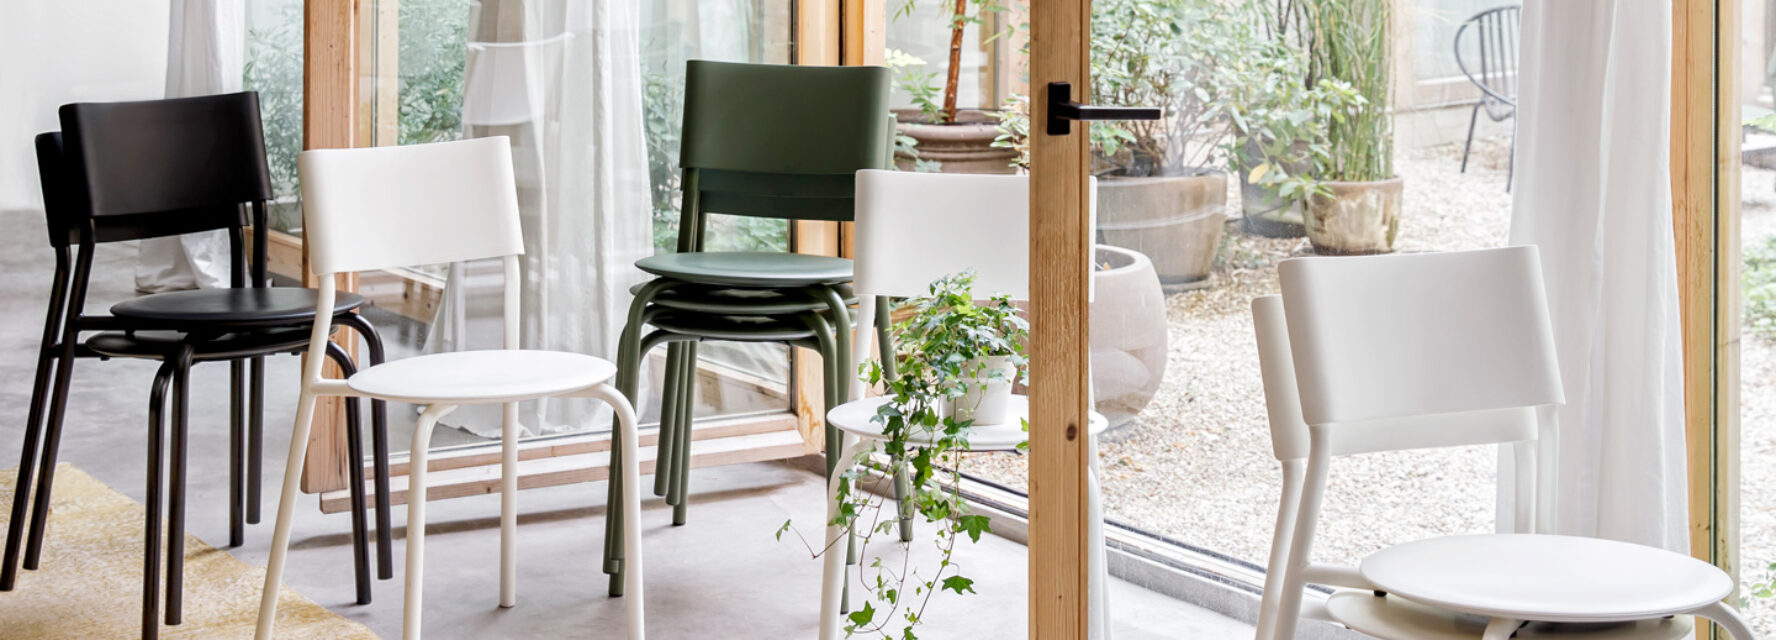 Chairs and stools - TIPTOE